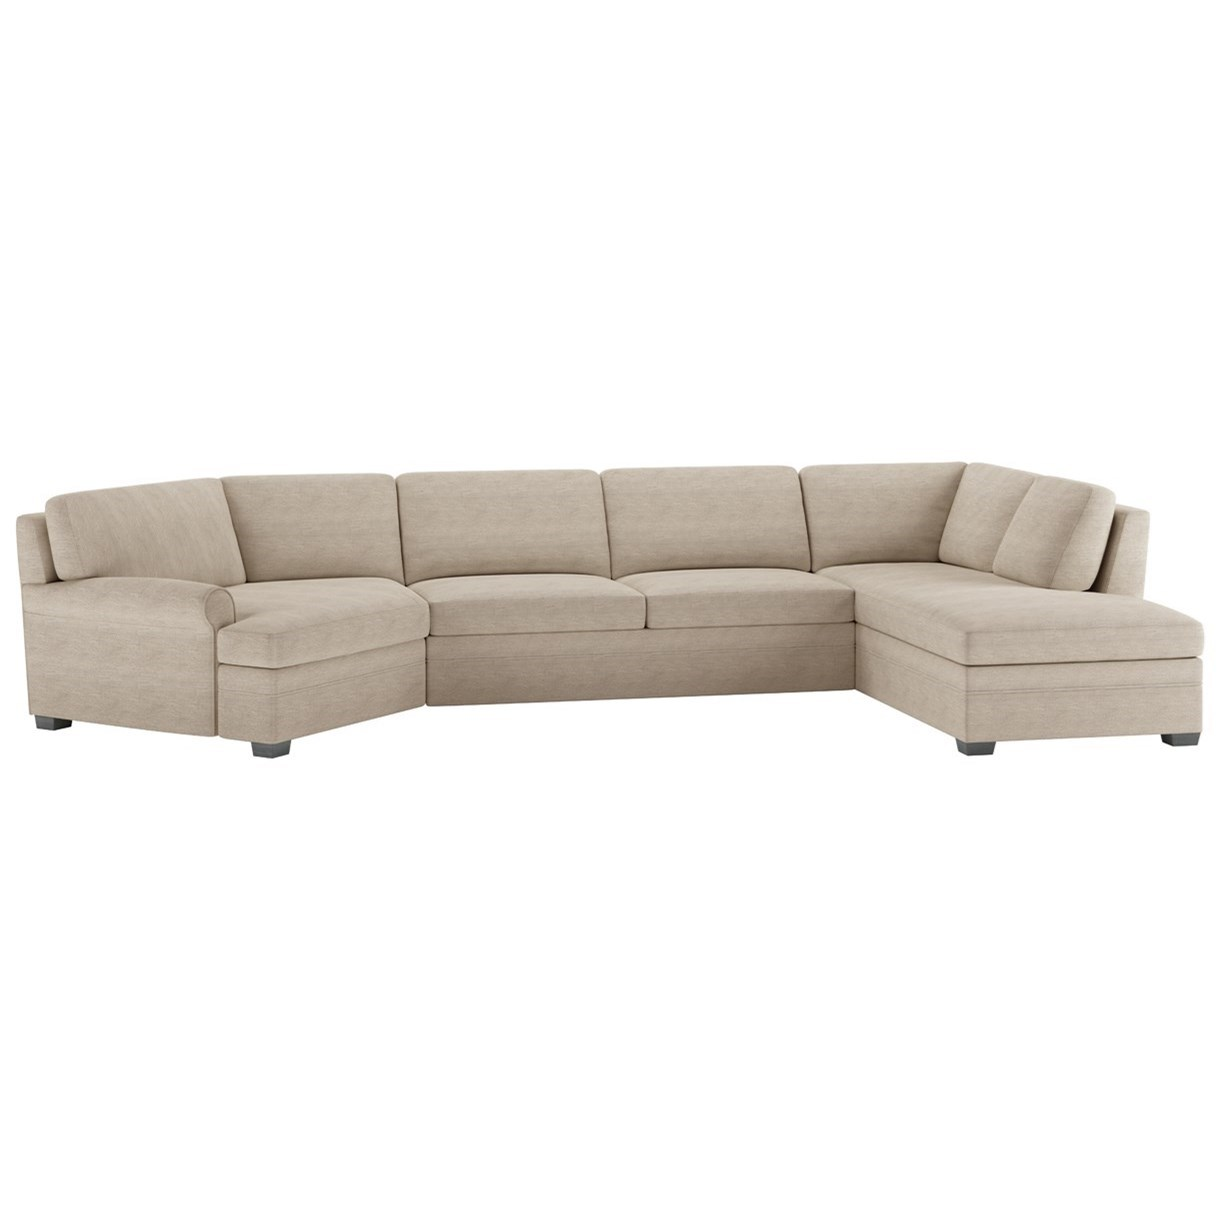 Gaines 3 Pc Sectional w/ Queen Sleeper & LAS Chaise by American Leather at Saugerties Furniture Mart